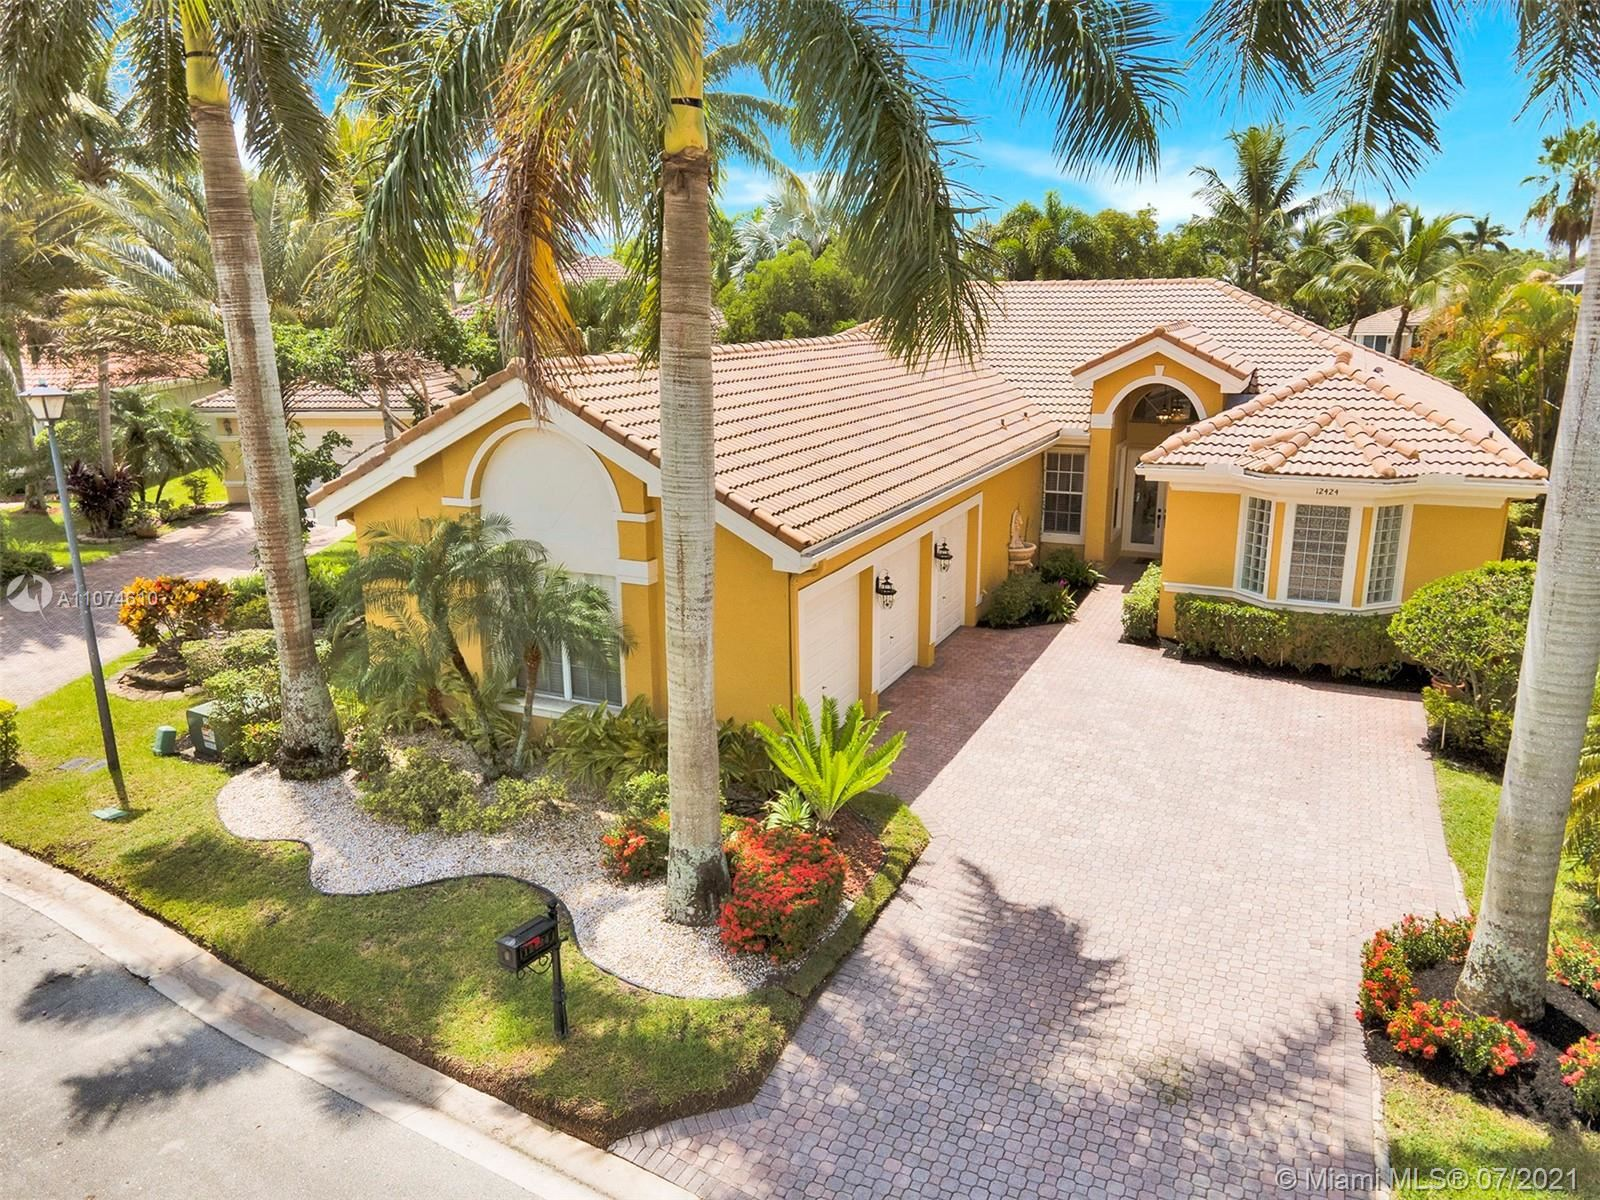 12424 NW 62nd Ct, Coral Springs, FL 33076 - #: A11074610